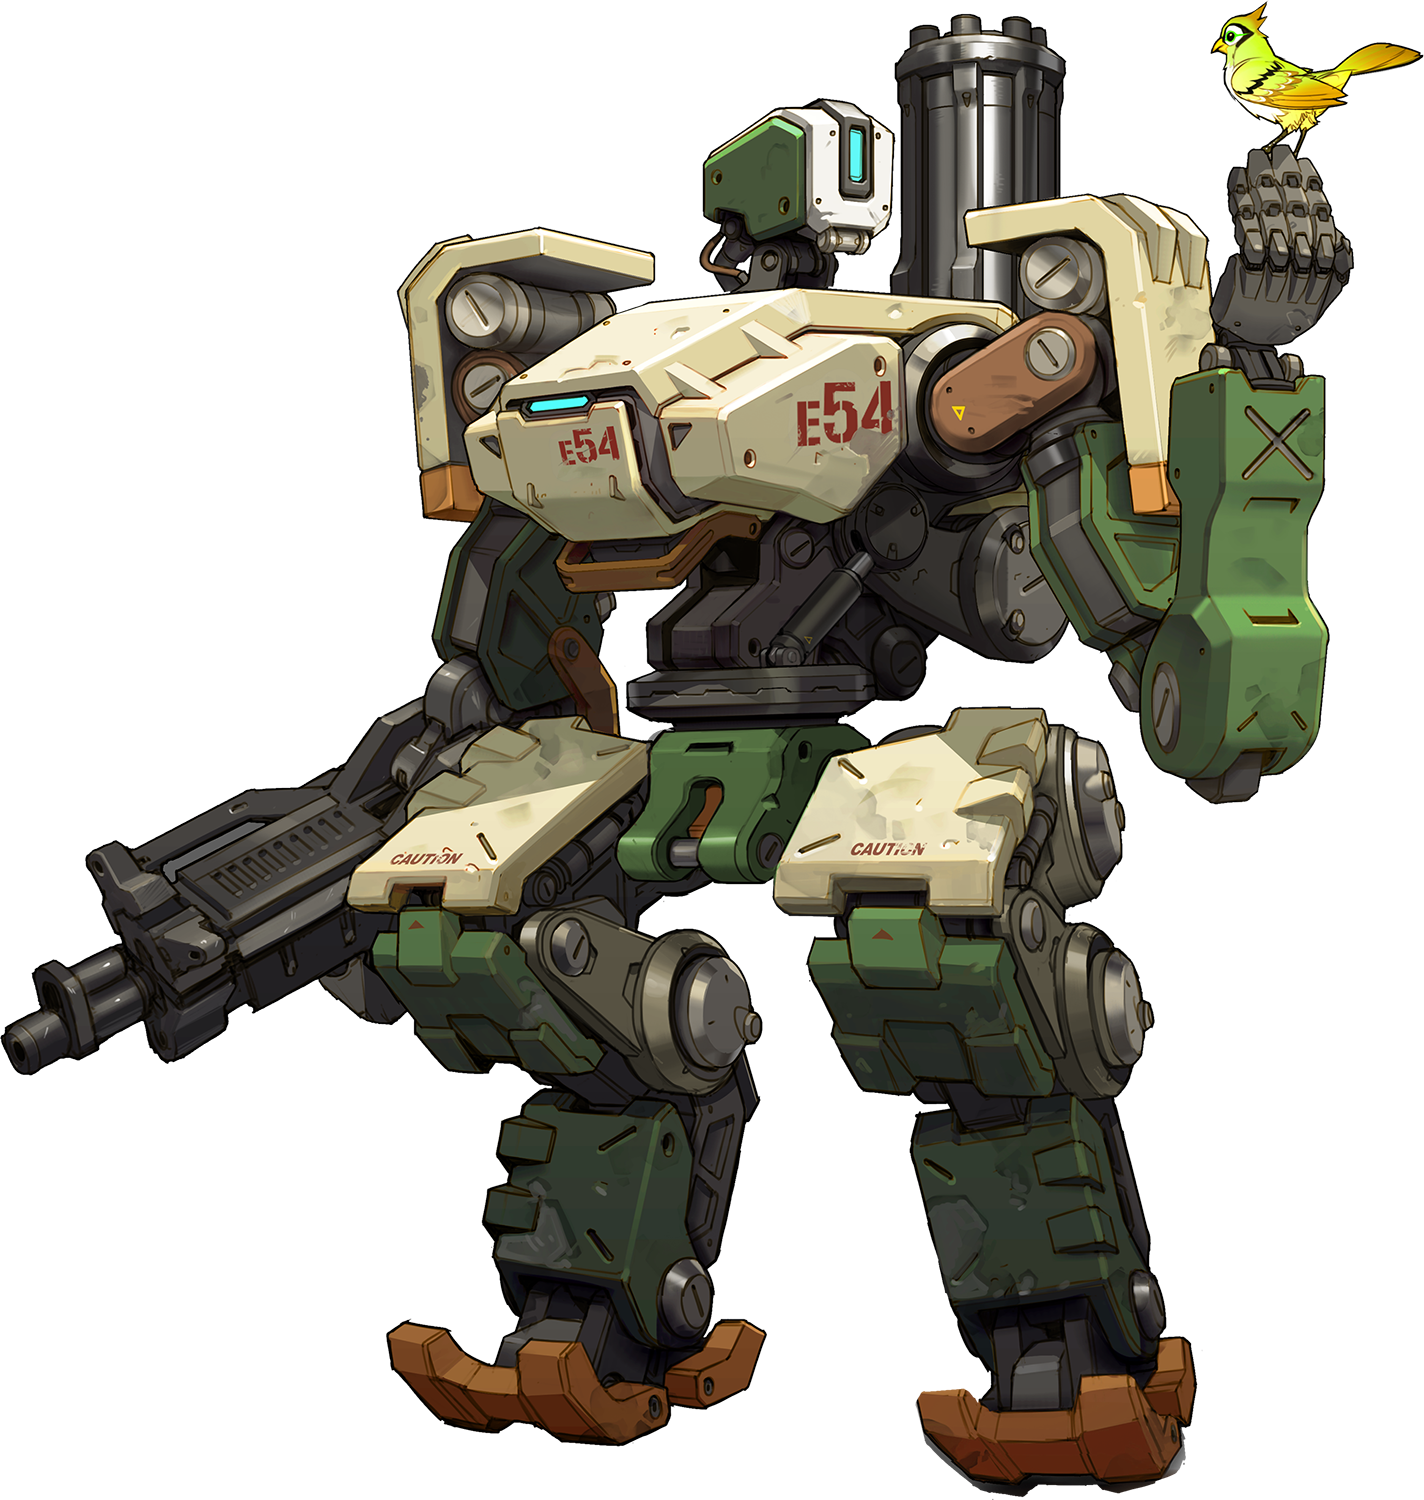 latest?cb=20160620013809 - Download Bastion for FREE - Free Game Hacks